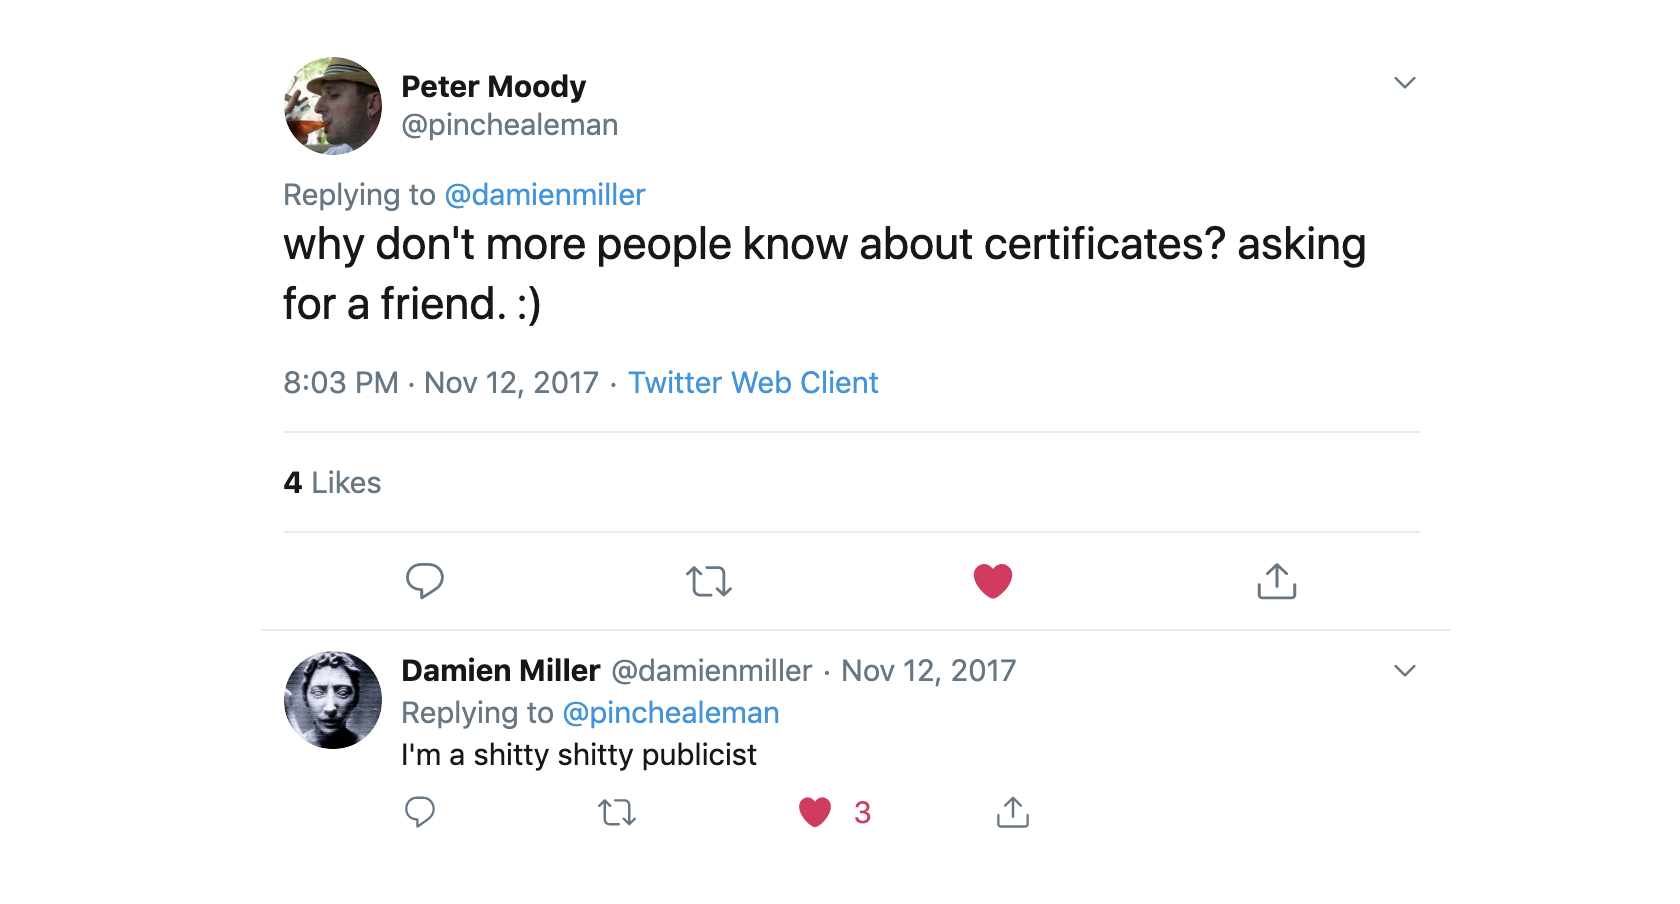 why don't more people know about ssh certificates?